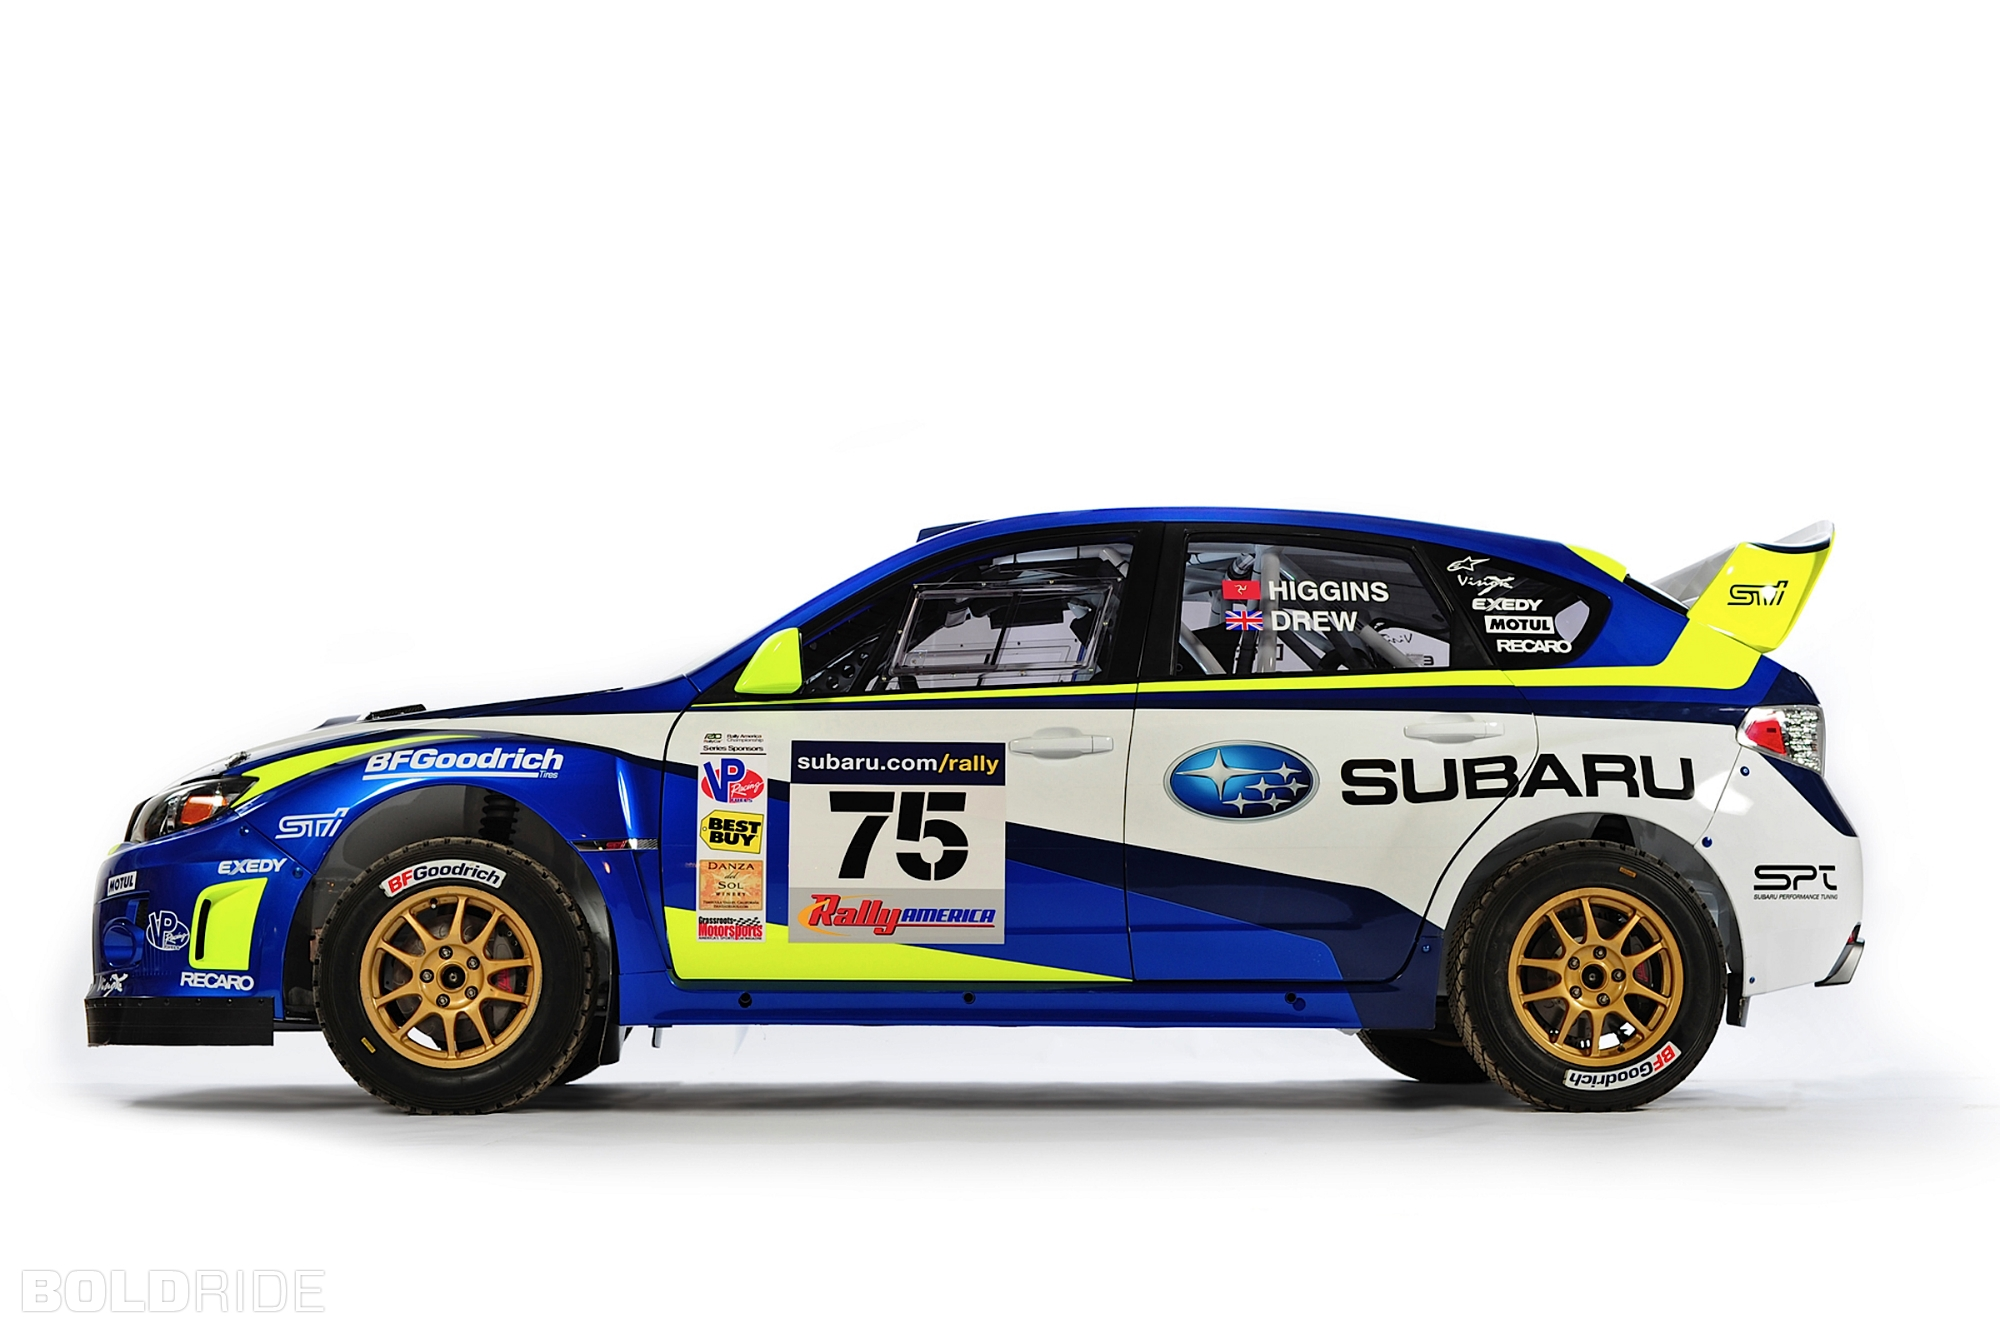 2011 Subaru WRX STI Rally Car 1600 x 1200